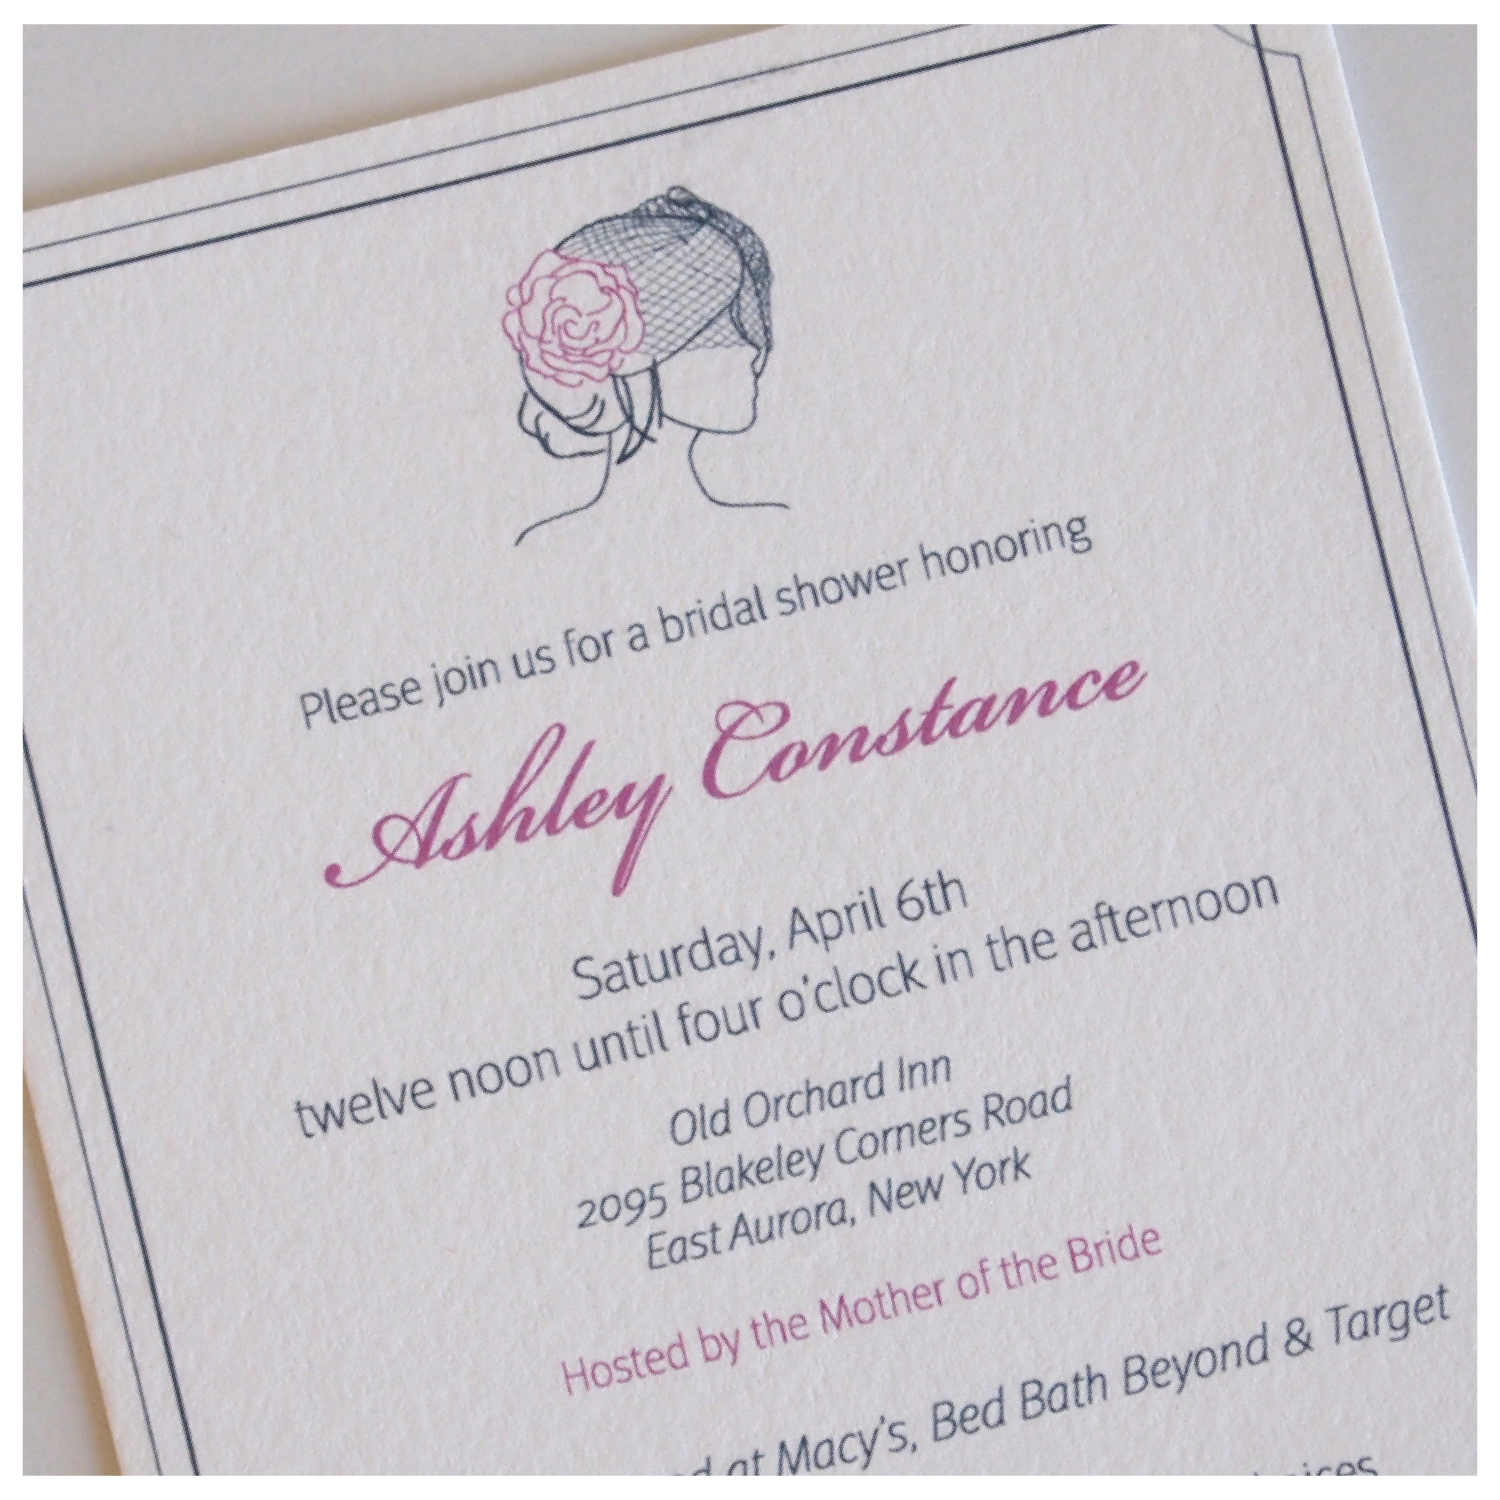 Invitations Ashley Bridal Shower-04.png